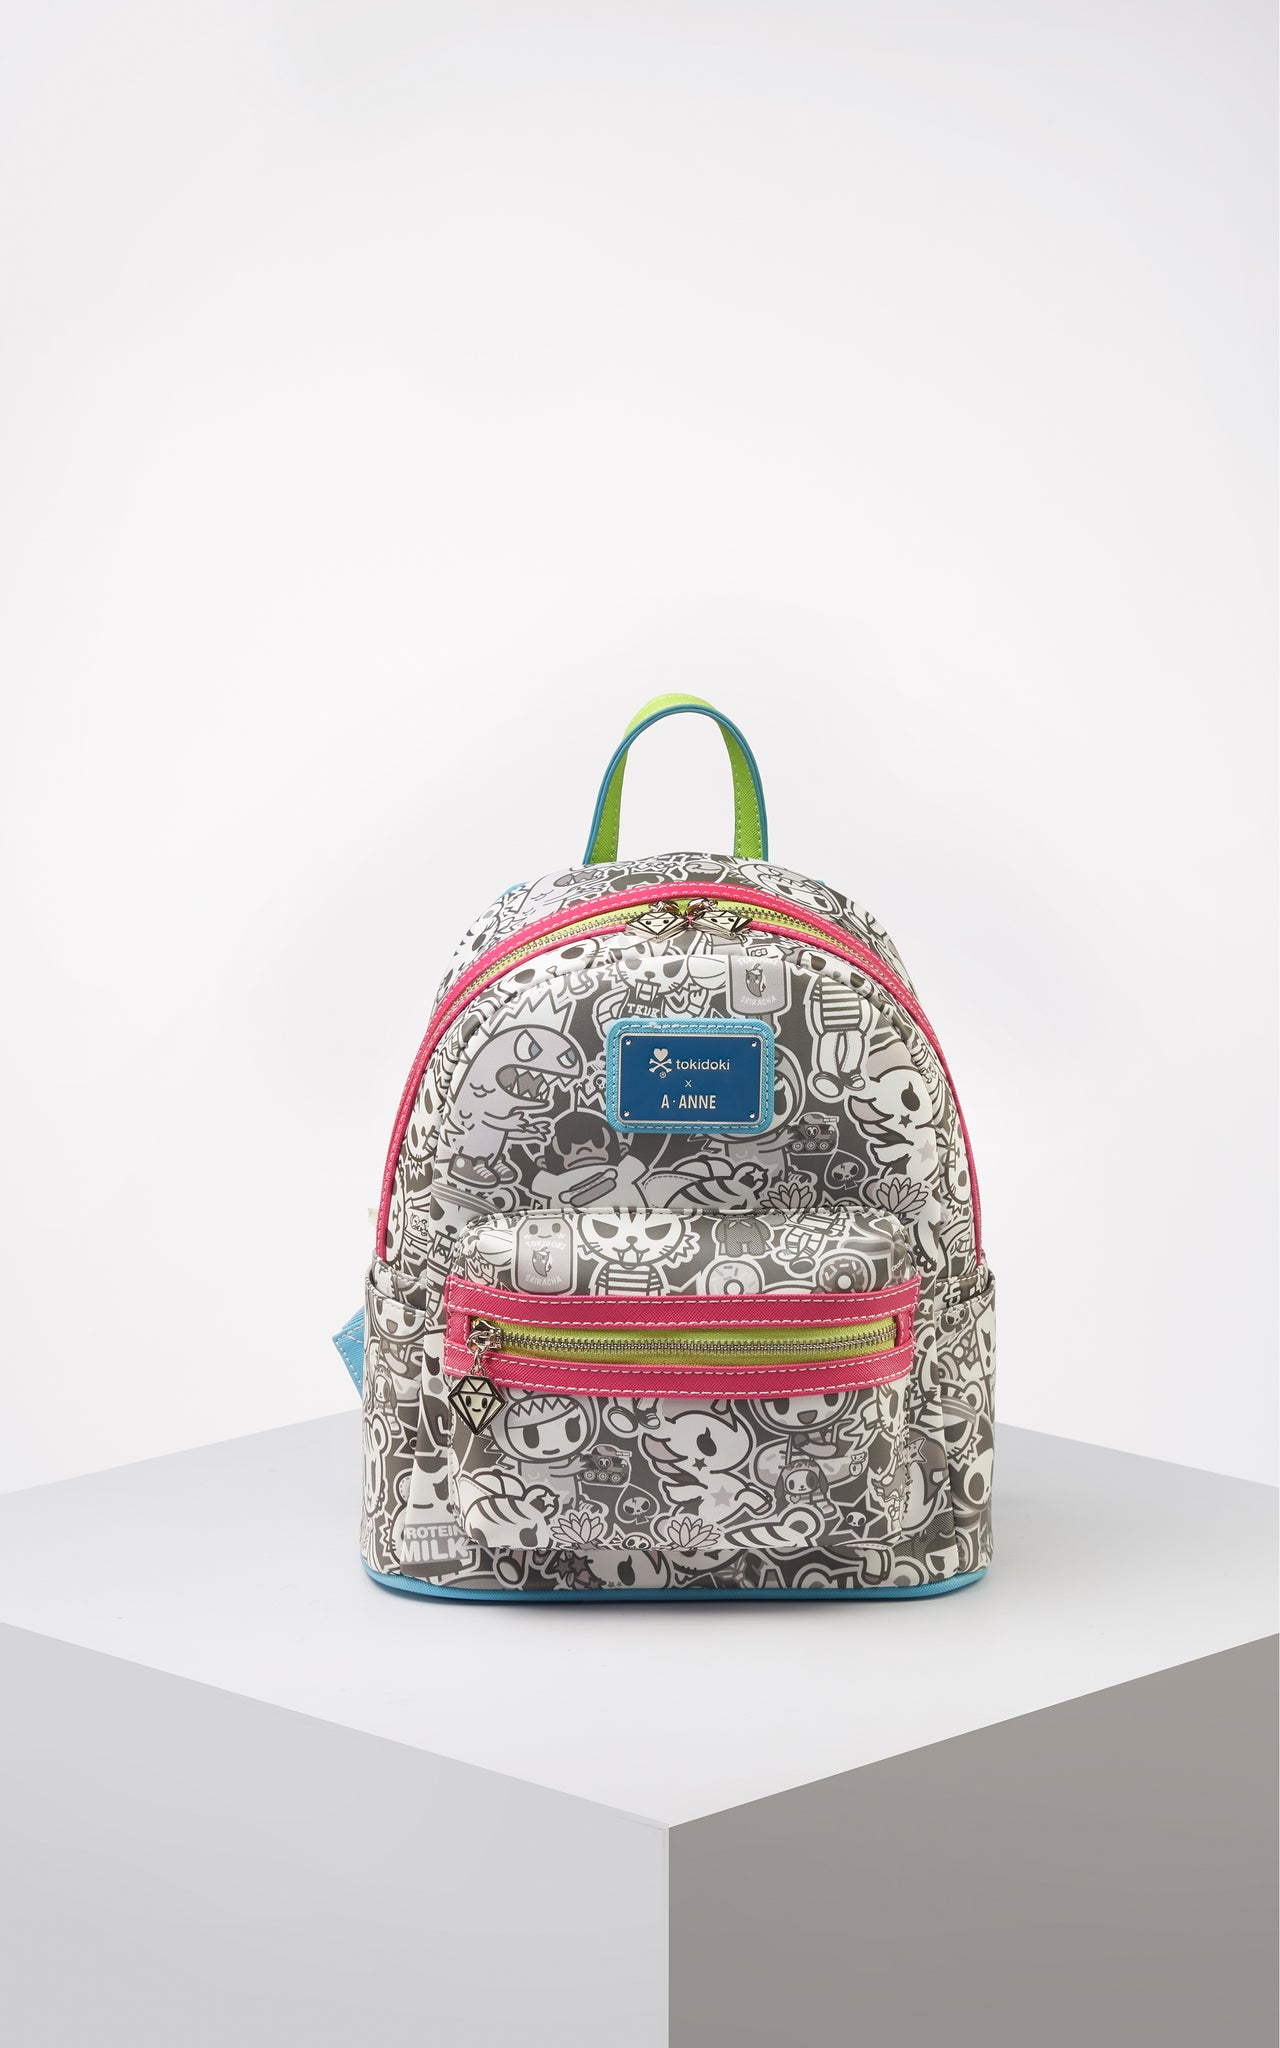 TDxAN Monochrome No. 1 Backpack (Neon) - A.Anne, Tokidoki, Ashlyn Anne, Fashion, Handbags, School, Bag, Accessories